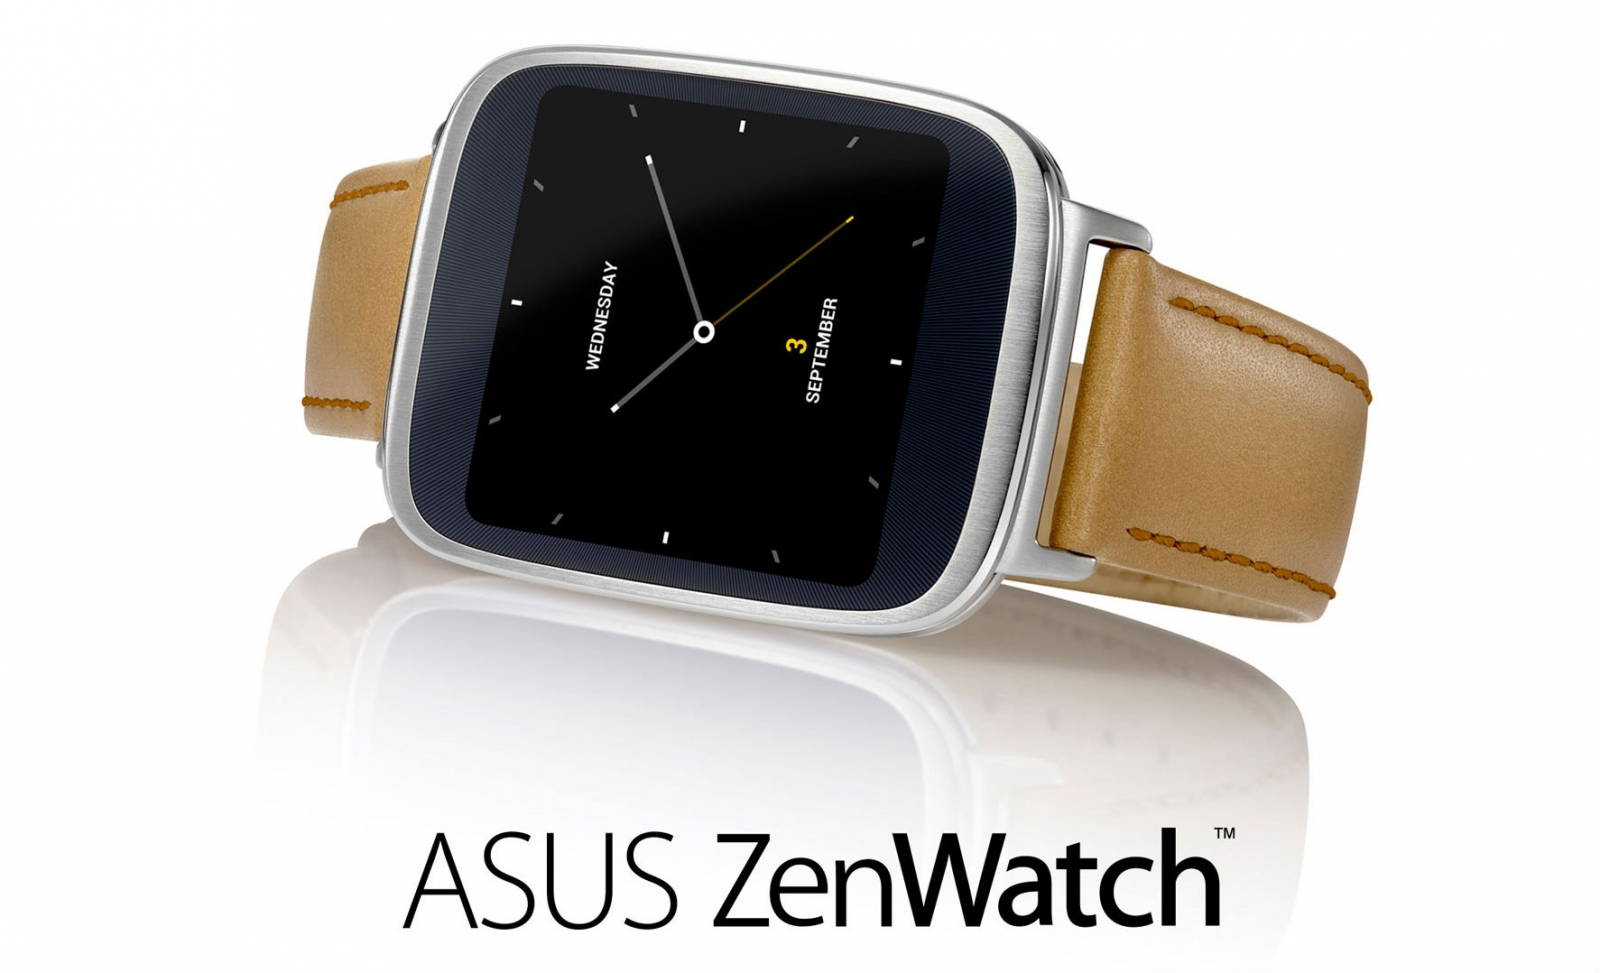 Asus ZenWatch Launches